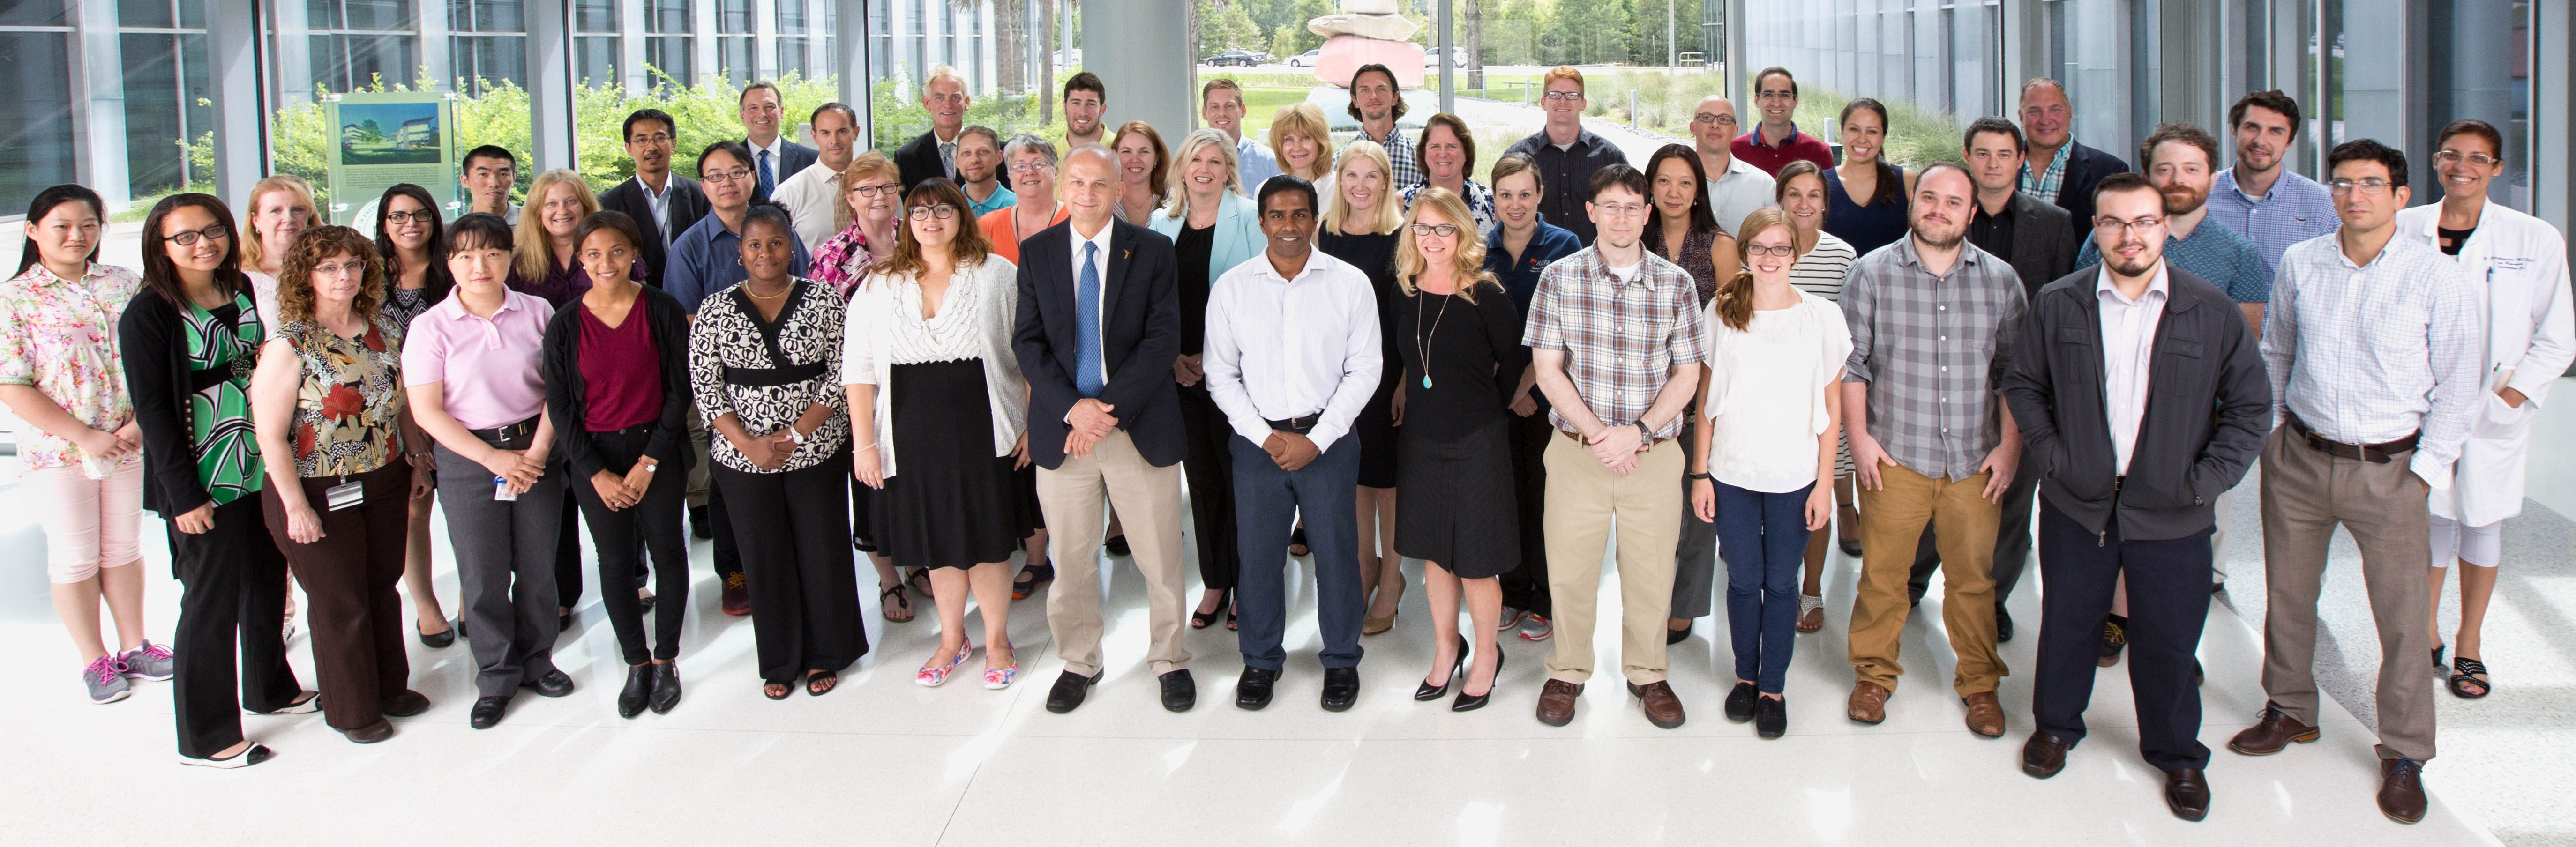 Department of Aging and Geriatric Research group photo